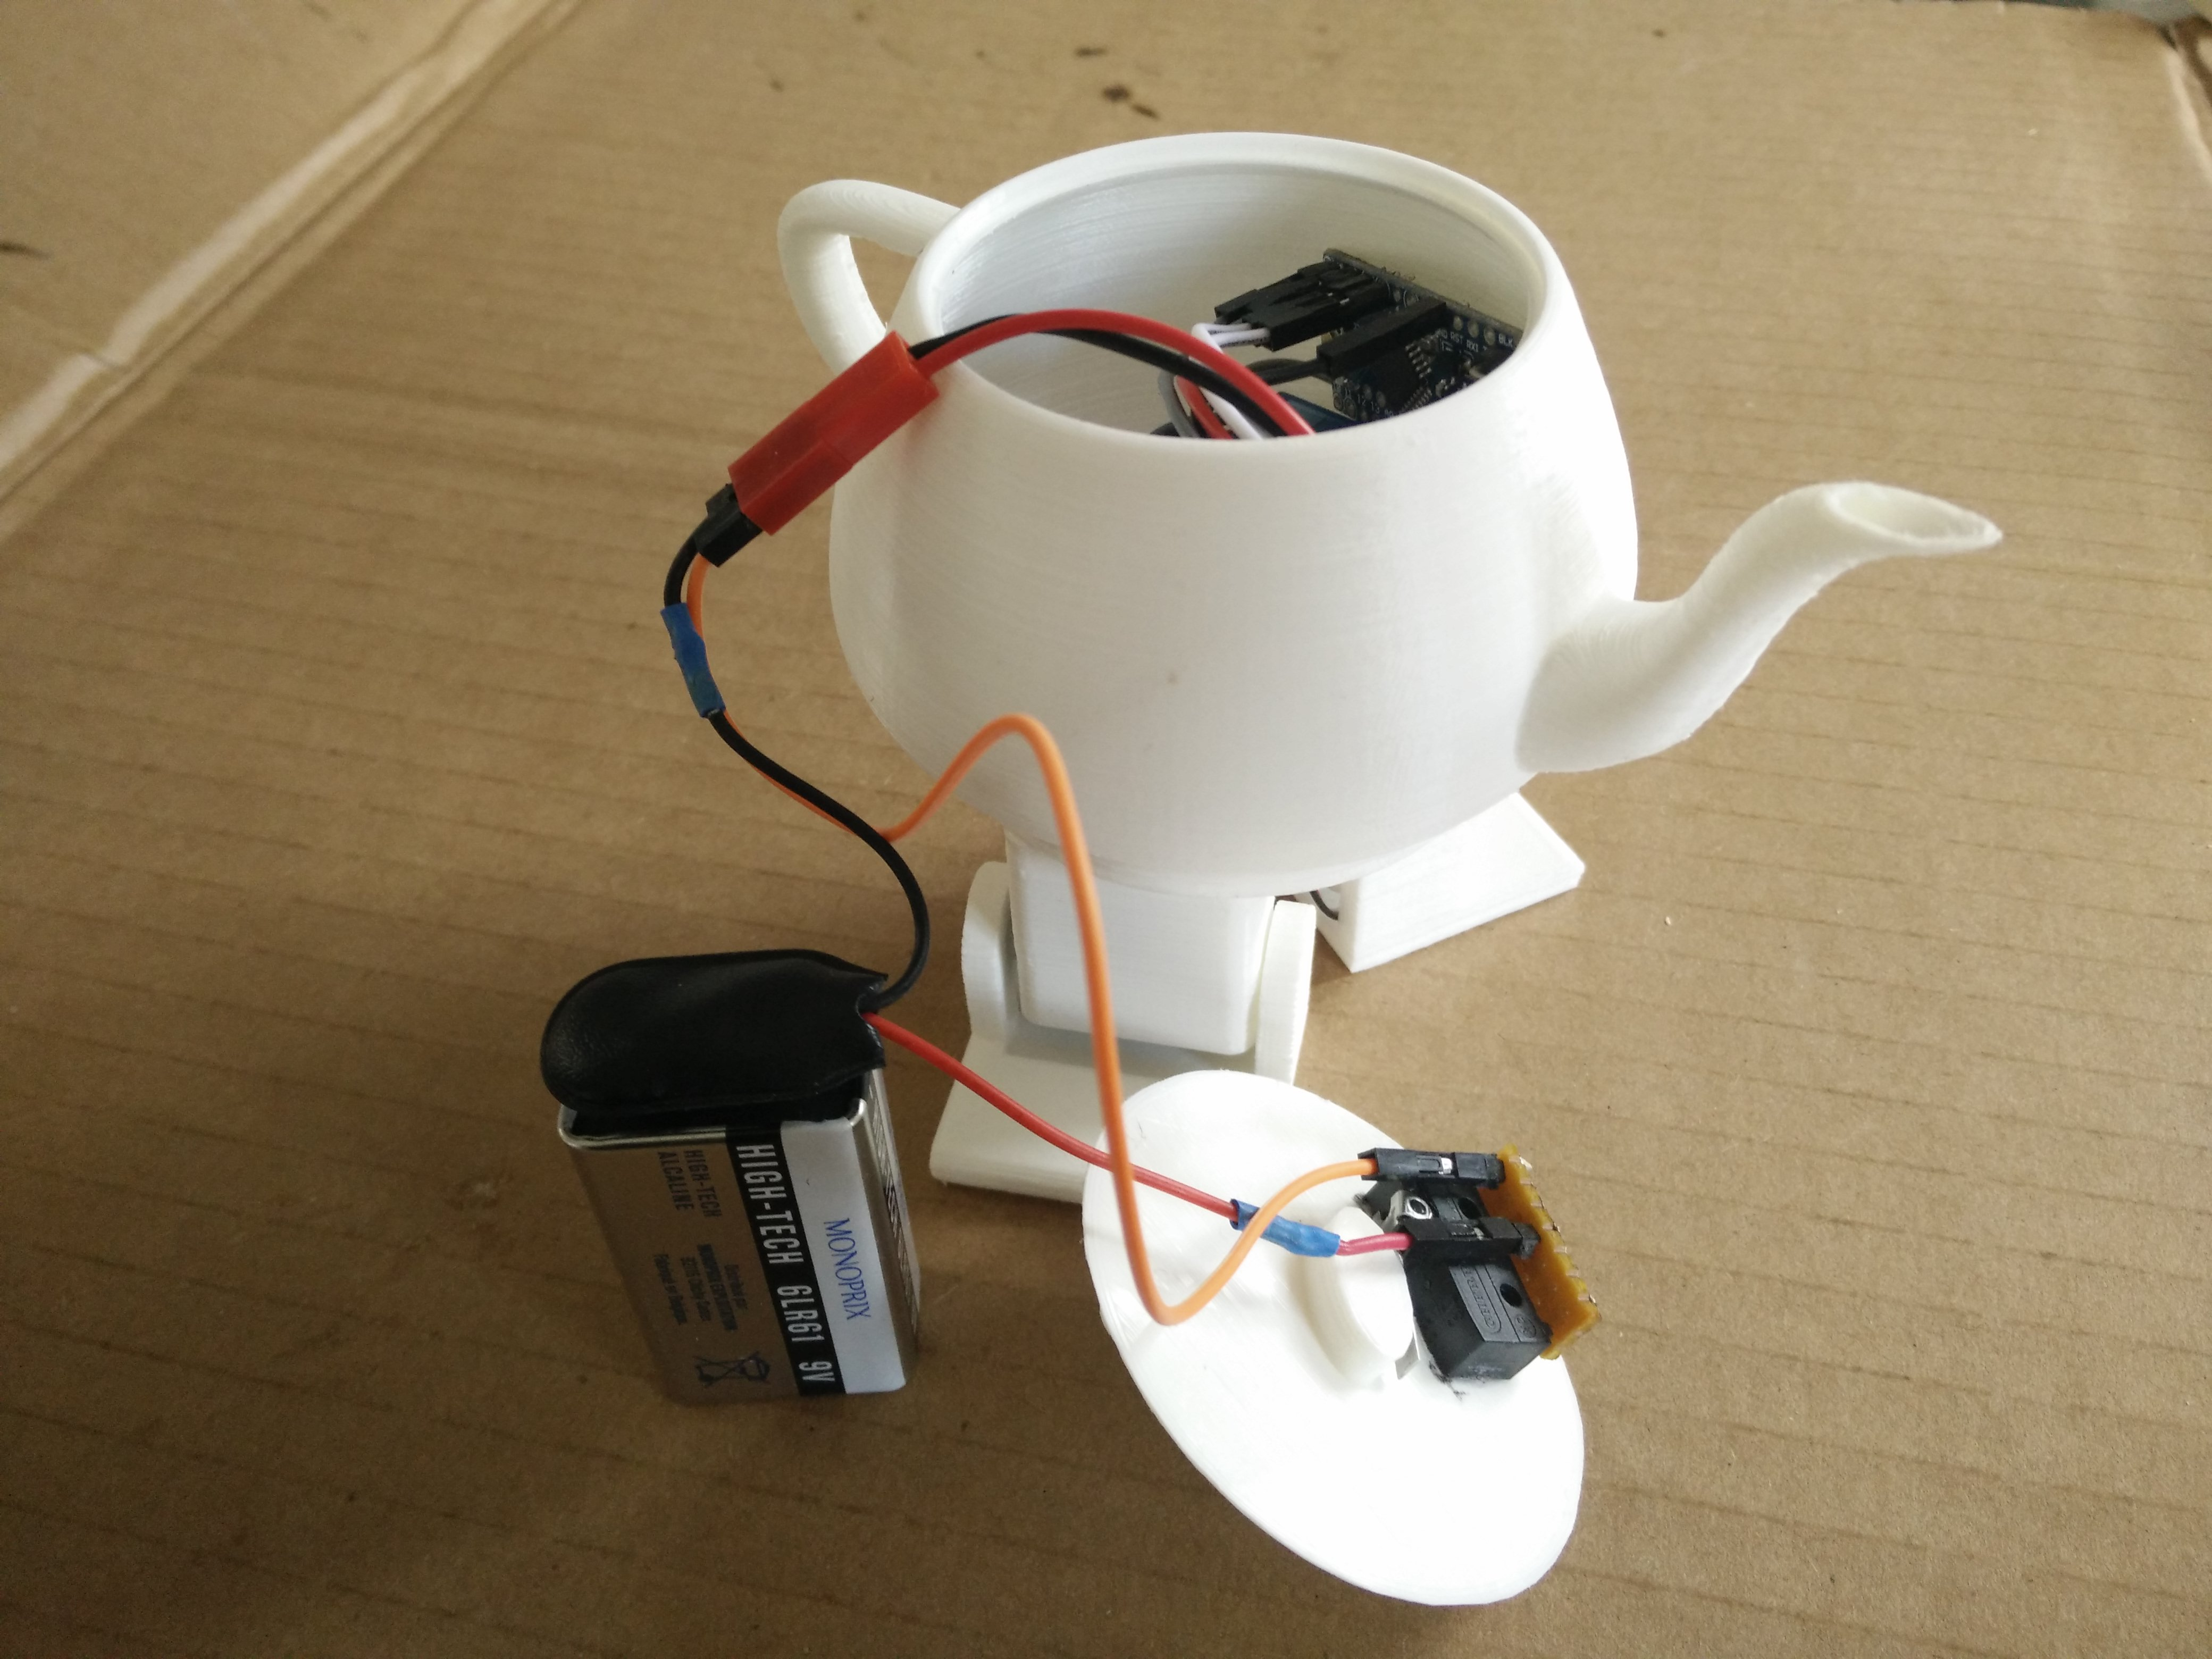 The switch connected to the robotic teapot's battery